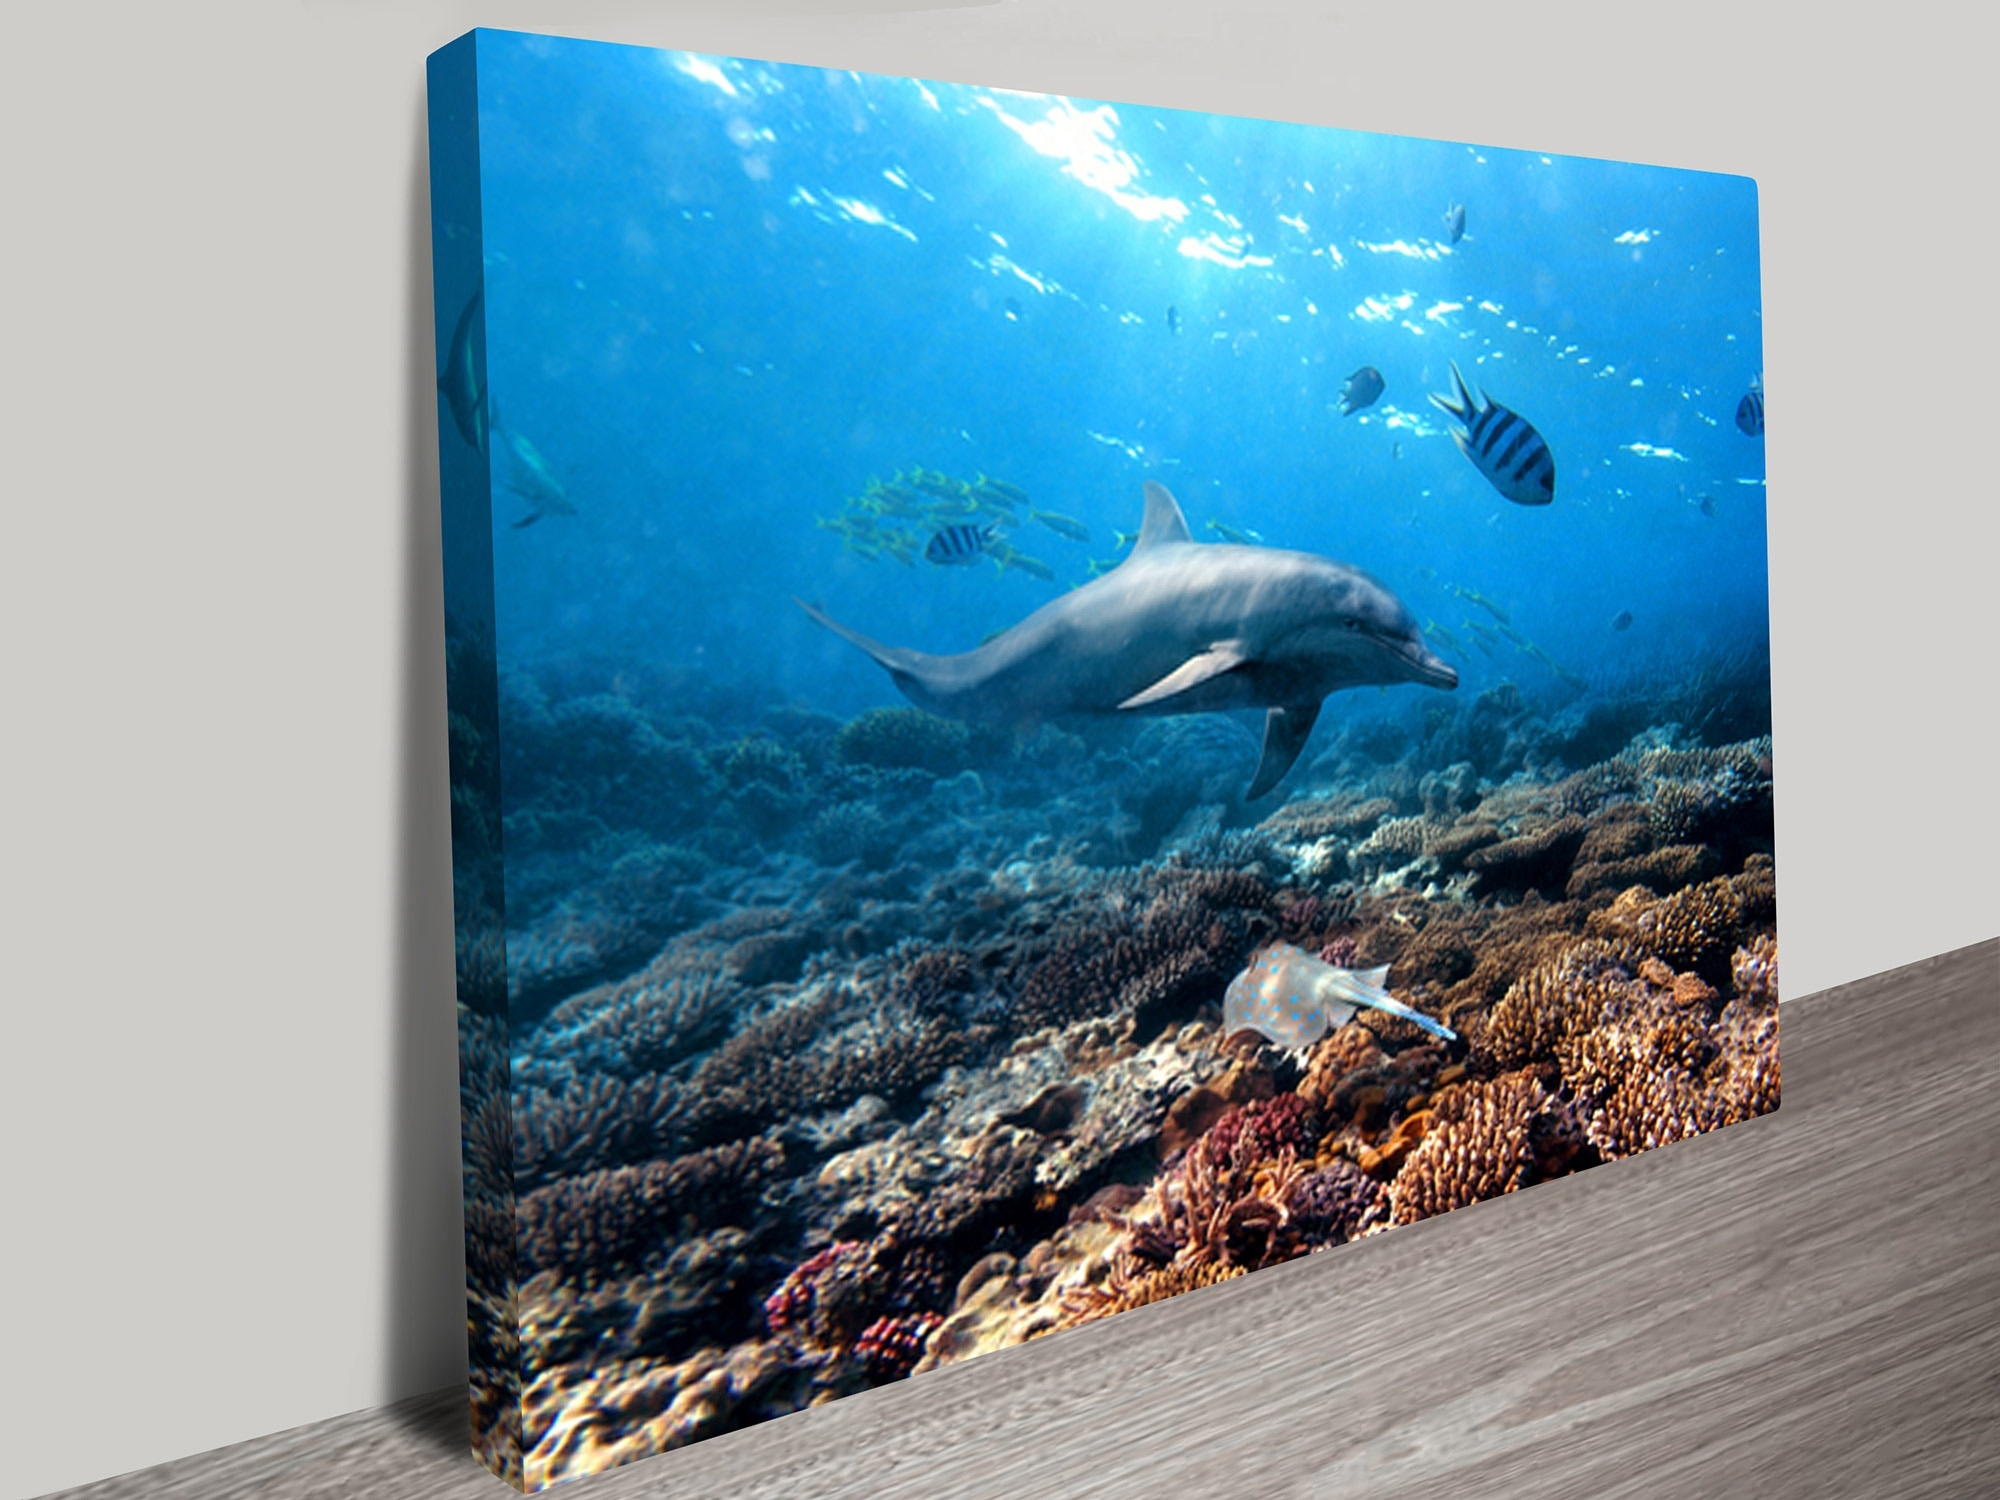 Geelong Canvas Wall Art Pertaining To Fashionable Buy Dolphins Canvas Prints Geelong Melbourne Australia (View 6 of 15)